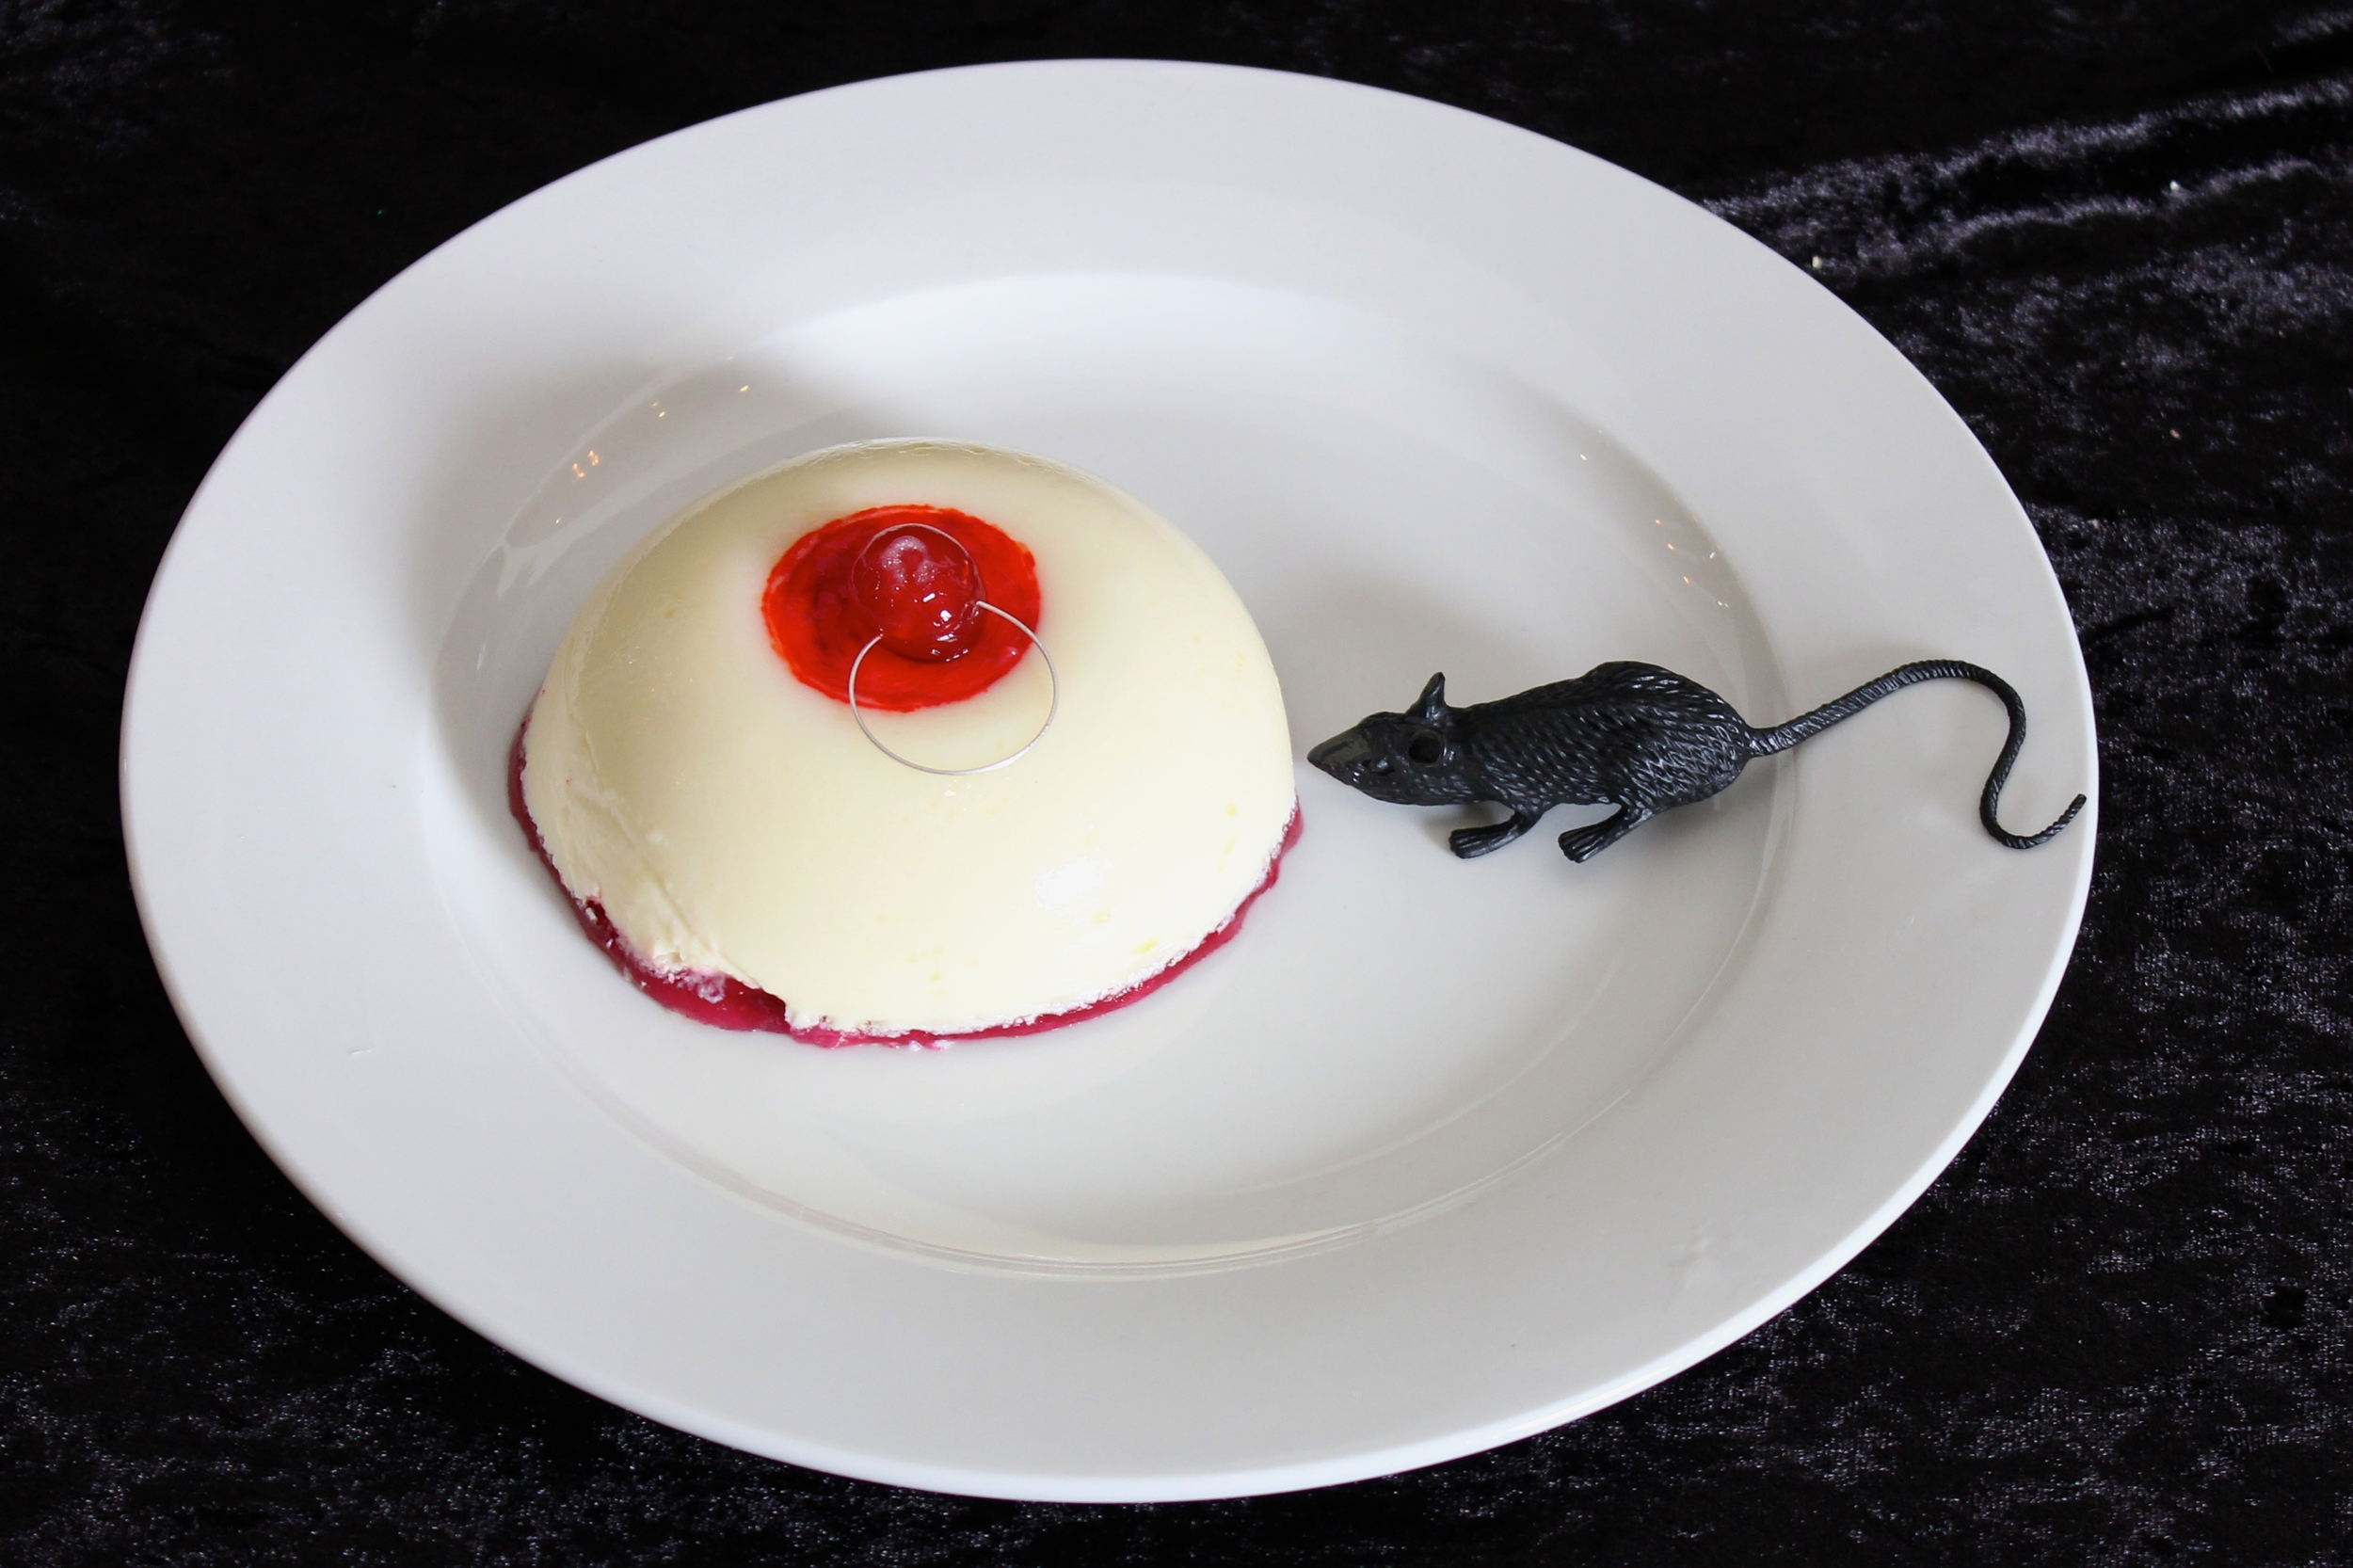 Gothic Dinner Party - Panna Cotta Breast